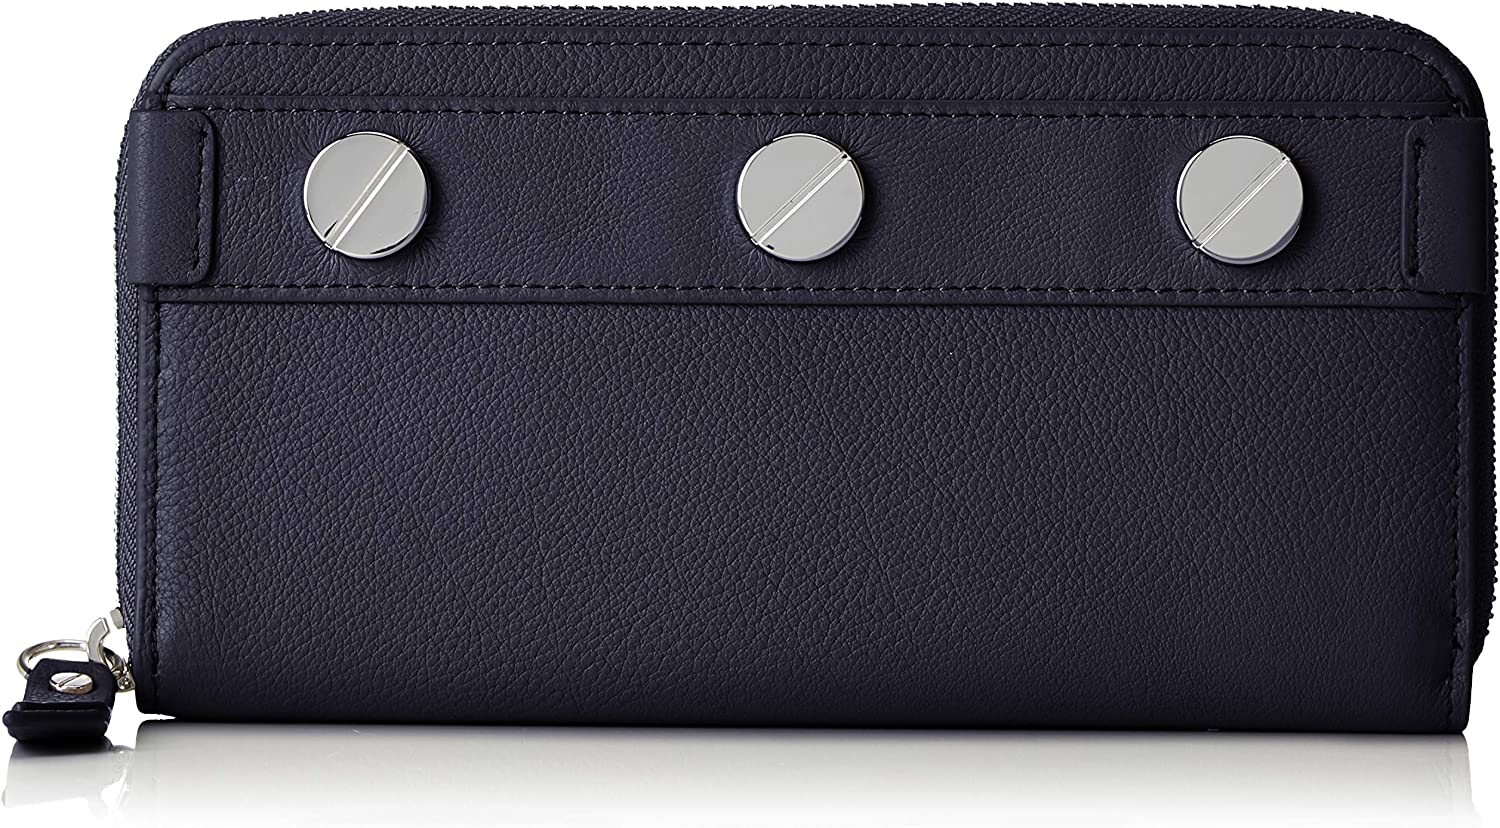 Liebeskind Berlin Women's Riarubaw8 Ring Wallet